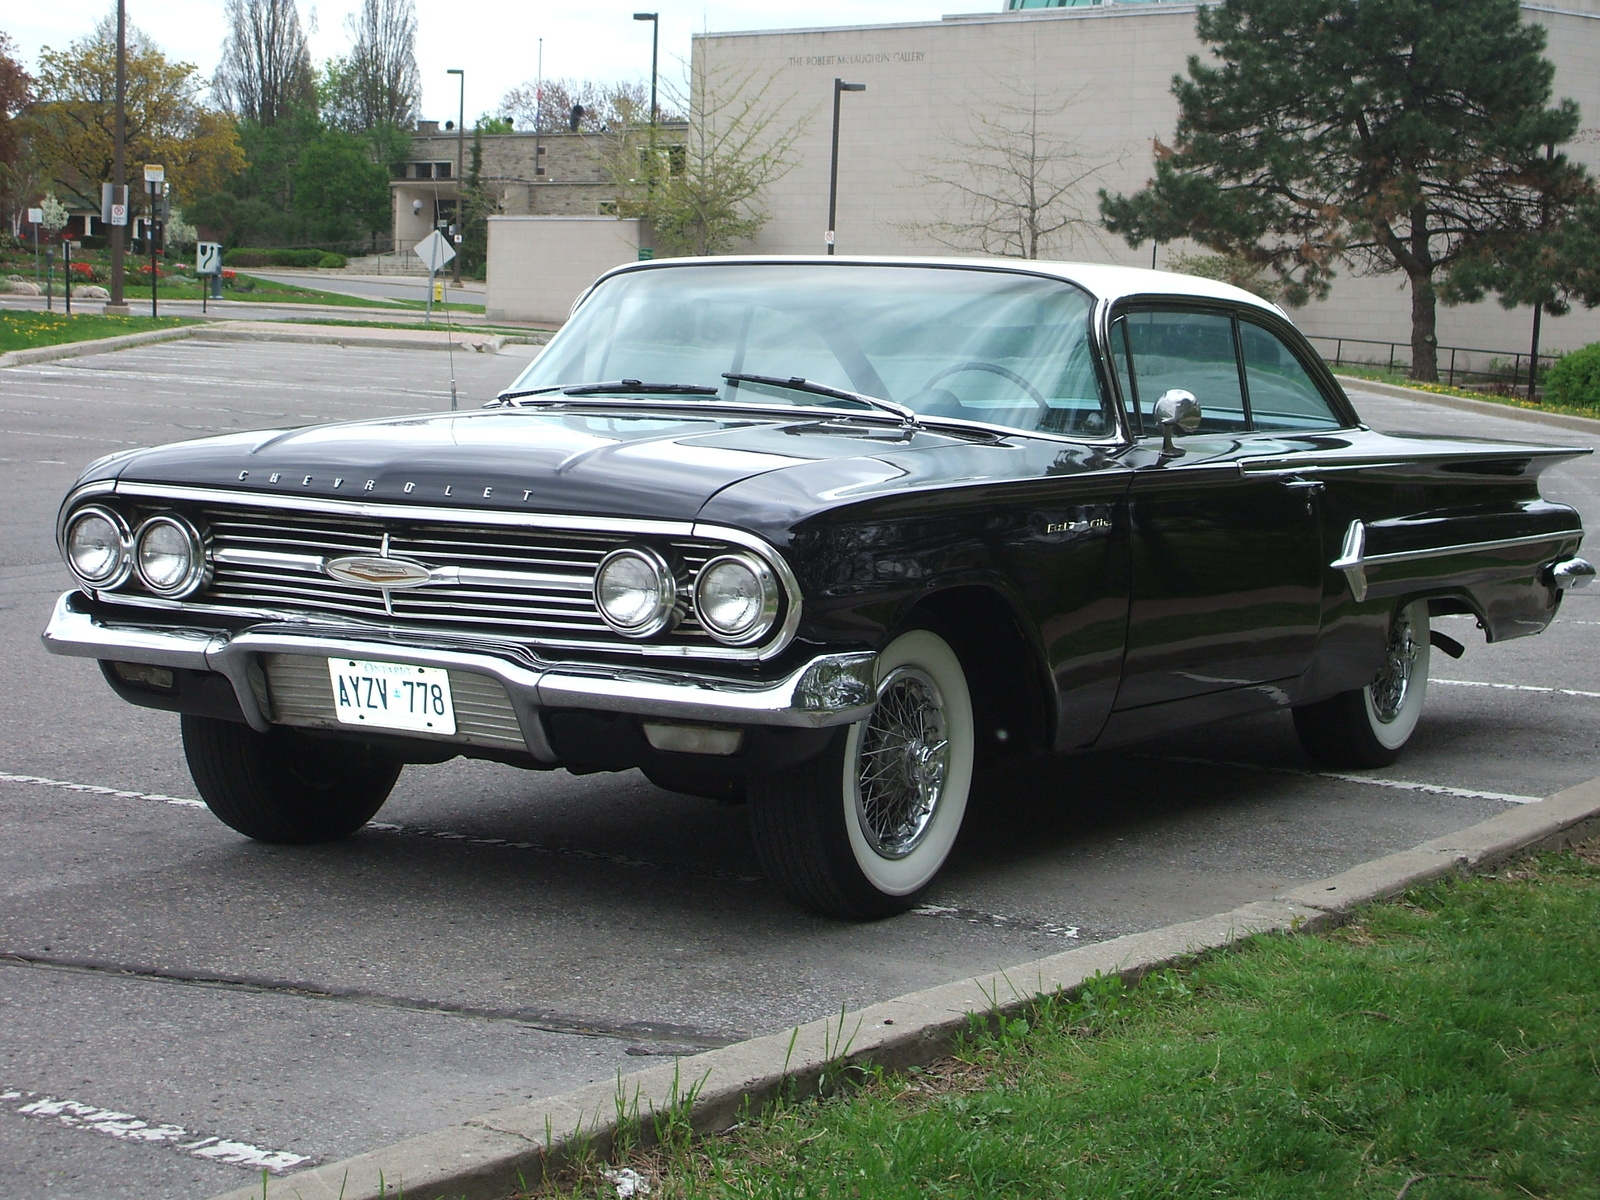 Chevrolet Bel air 1970 foto - 4